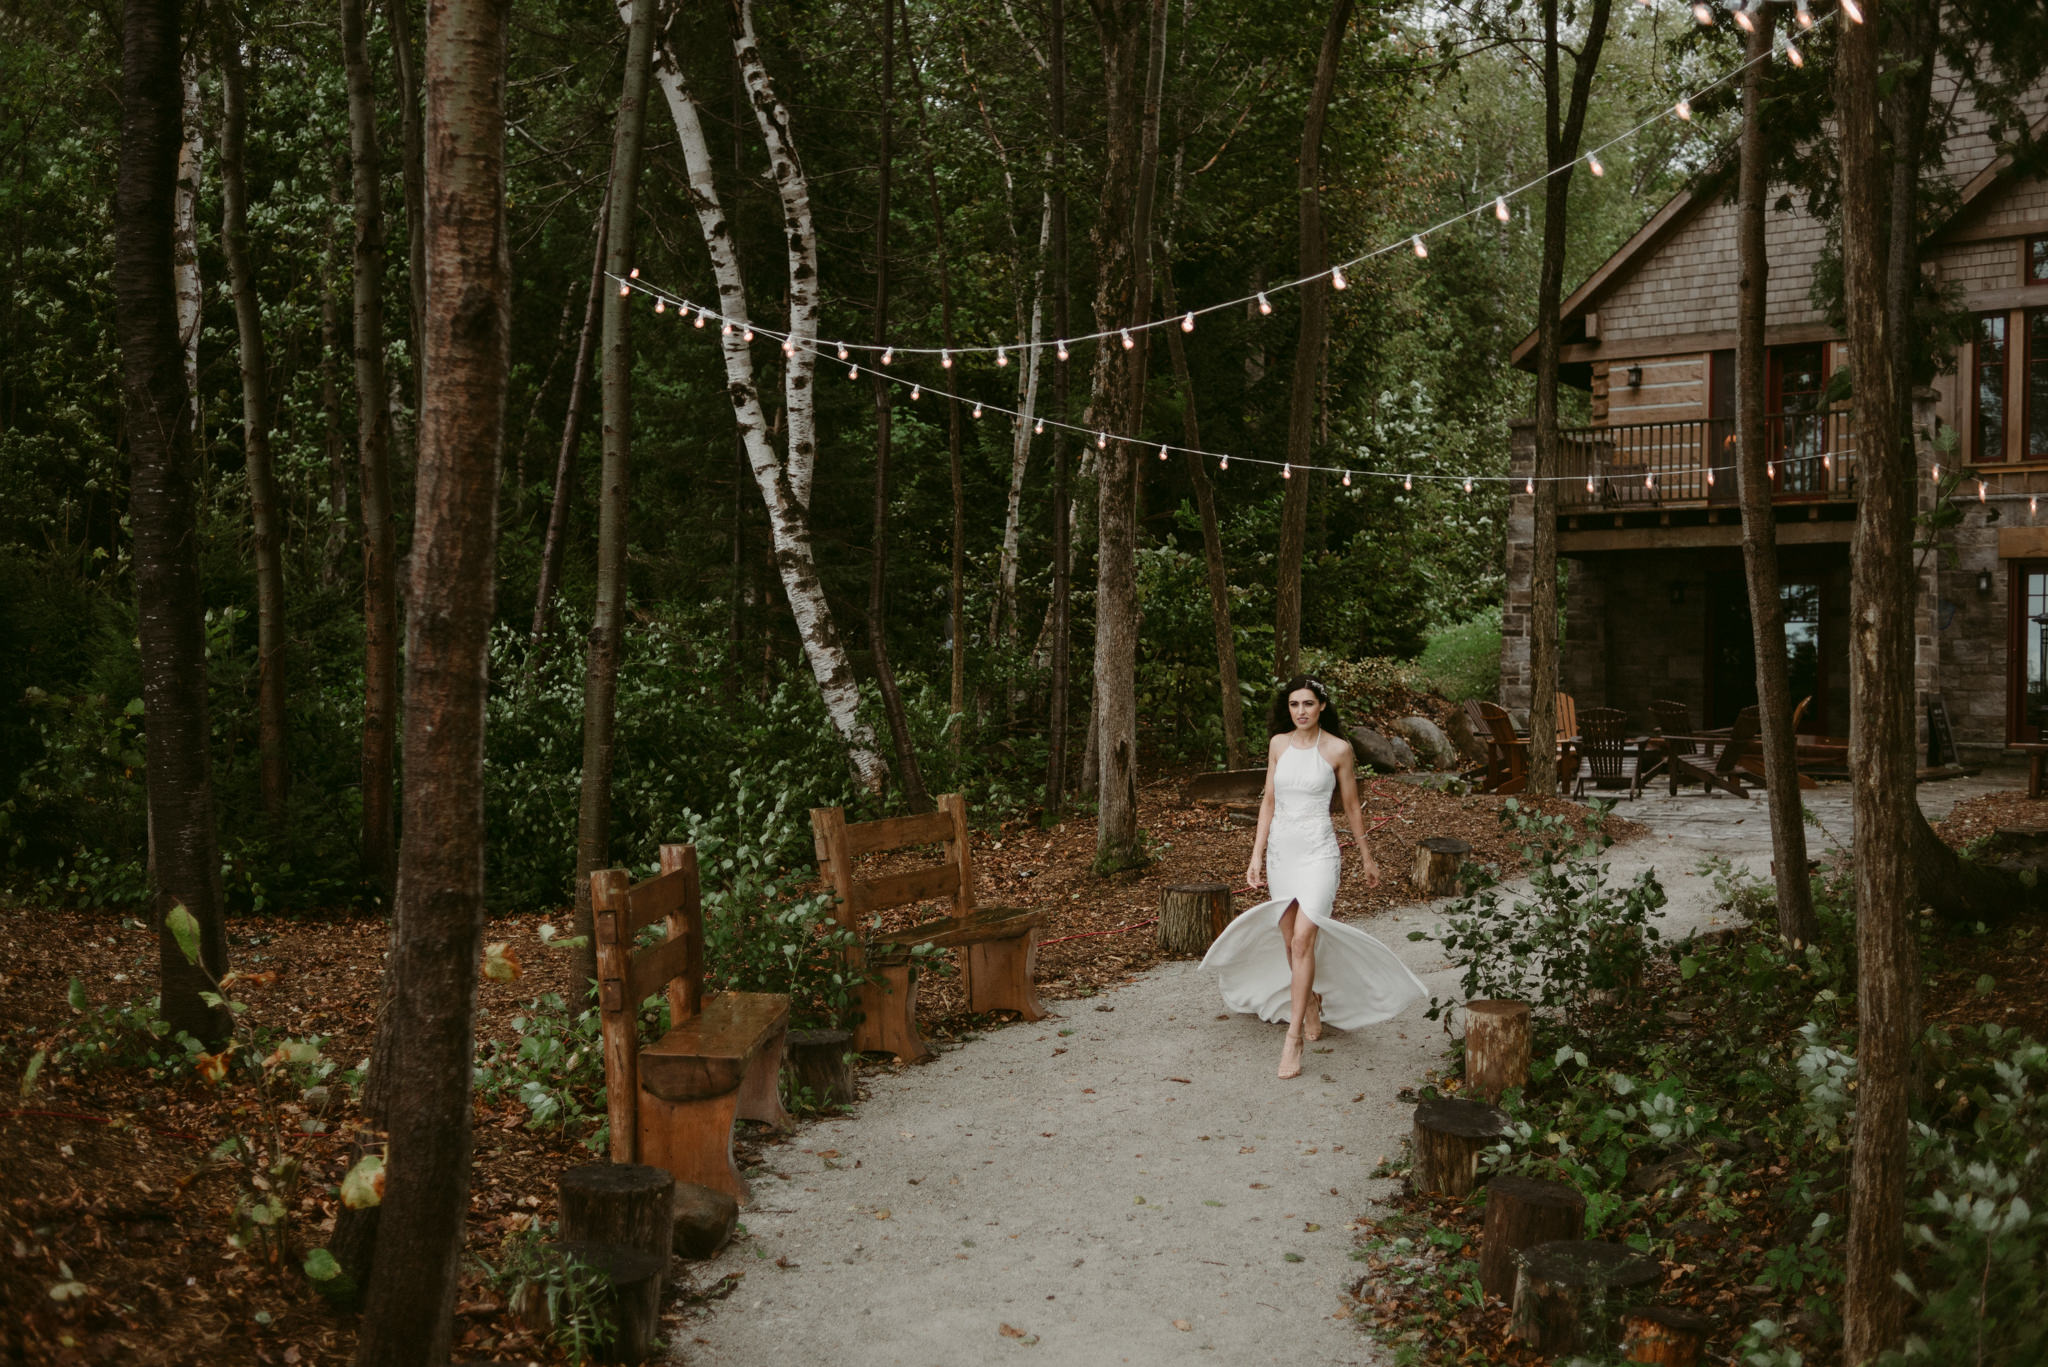 bride walking down path from cottage with string lights overhead